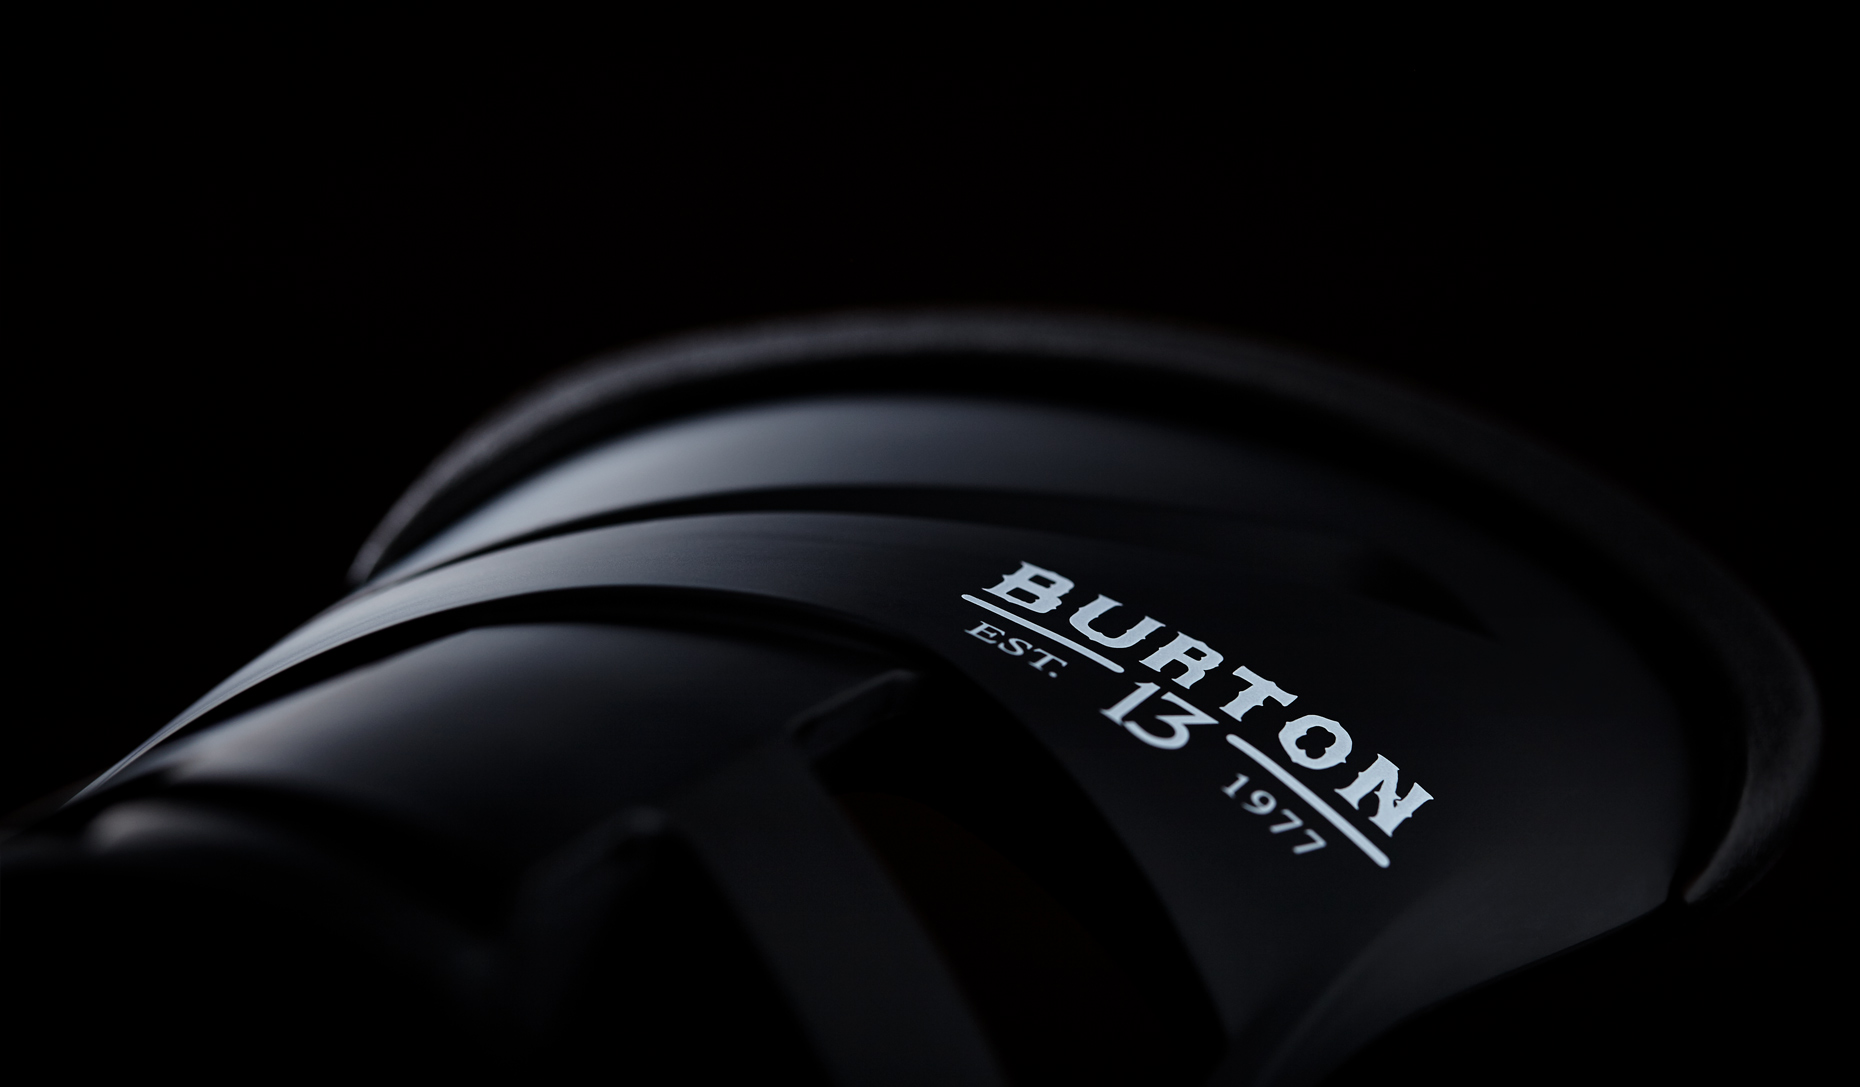 Product Photography Gear Burton Mission Snowboard Binding Black Detail From REI  Back Denver